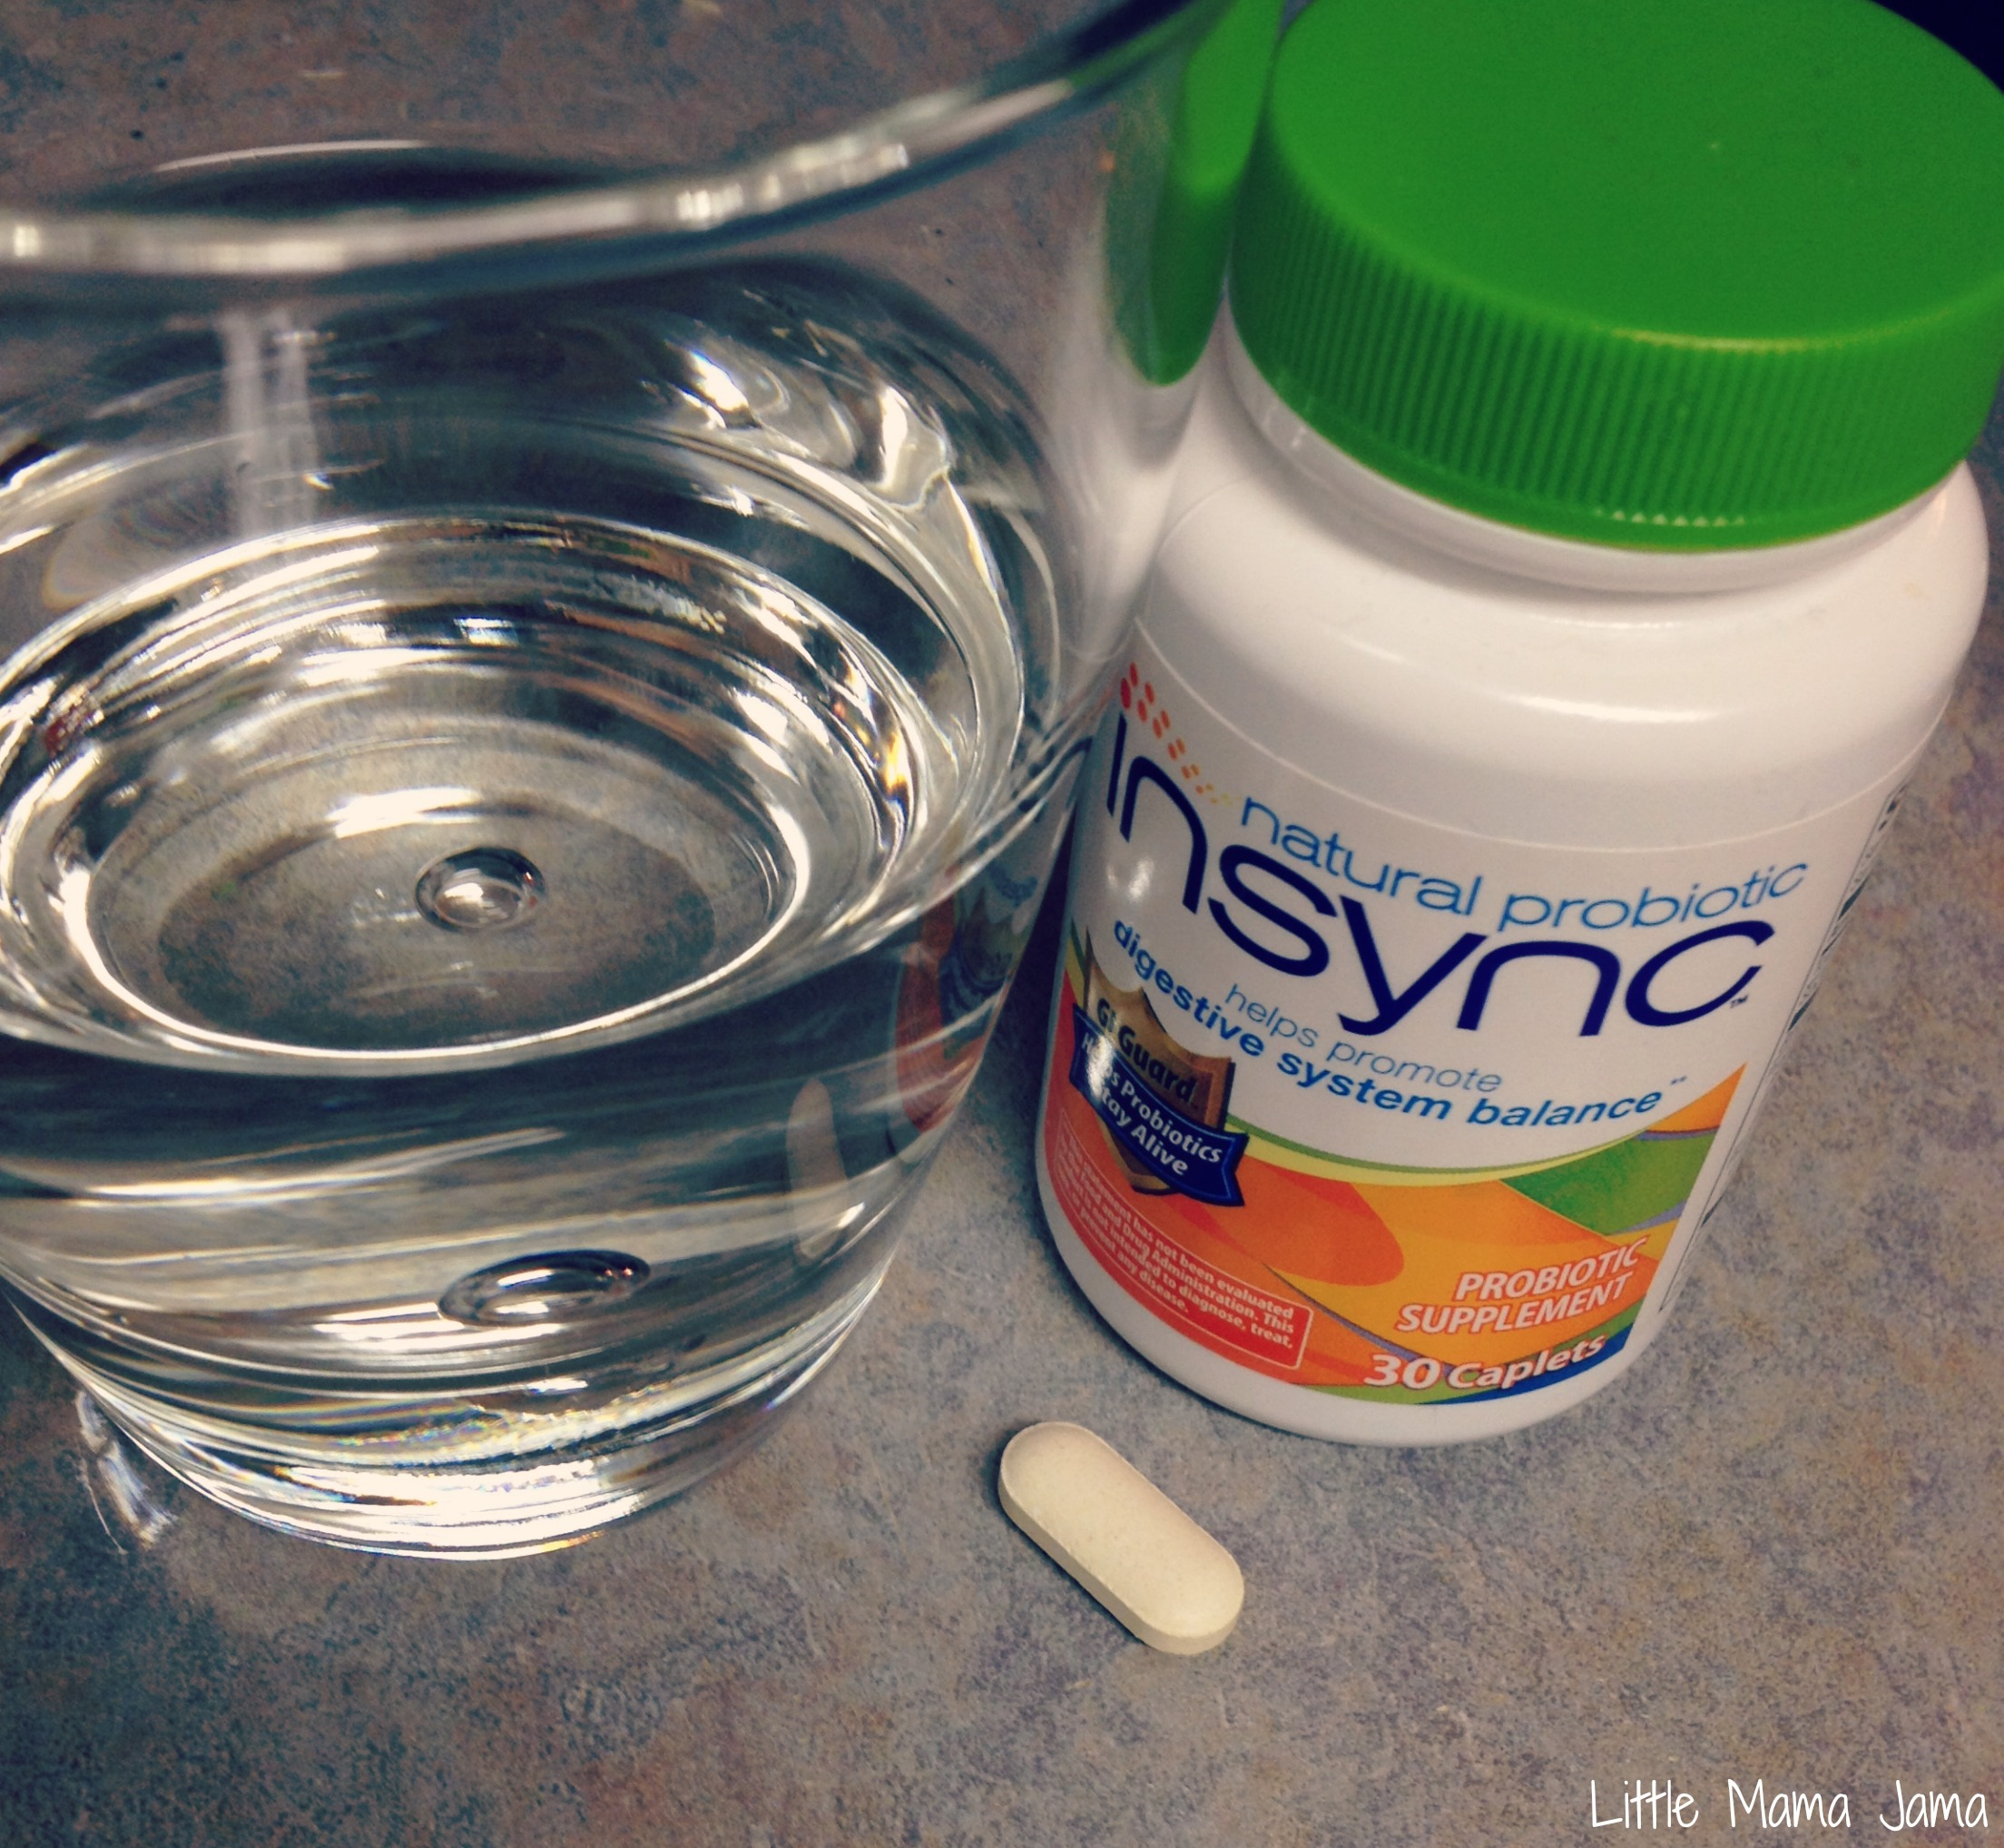 Taking a Natural Probiotic as Part of a Healthy Routine #shop #cbias